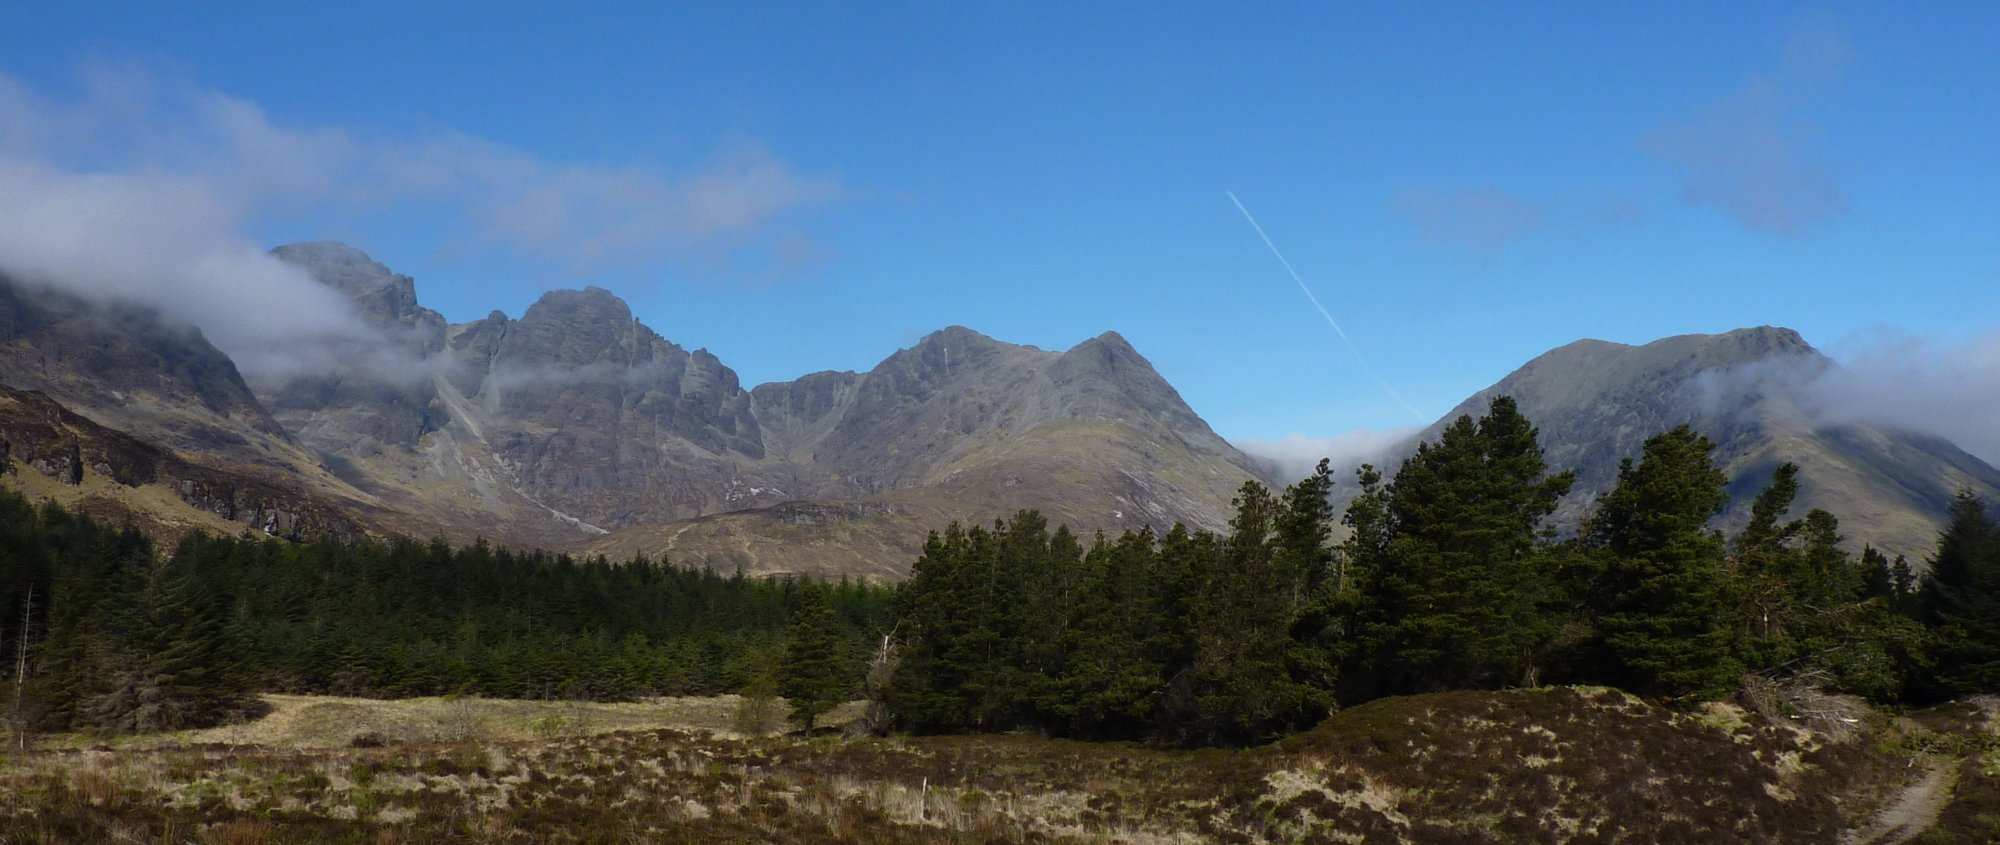 The path soon reveals the full splendour of Bla Bheinn